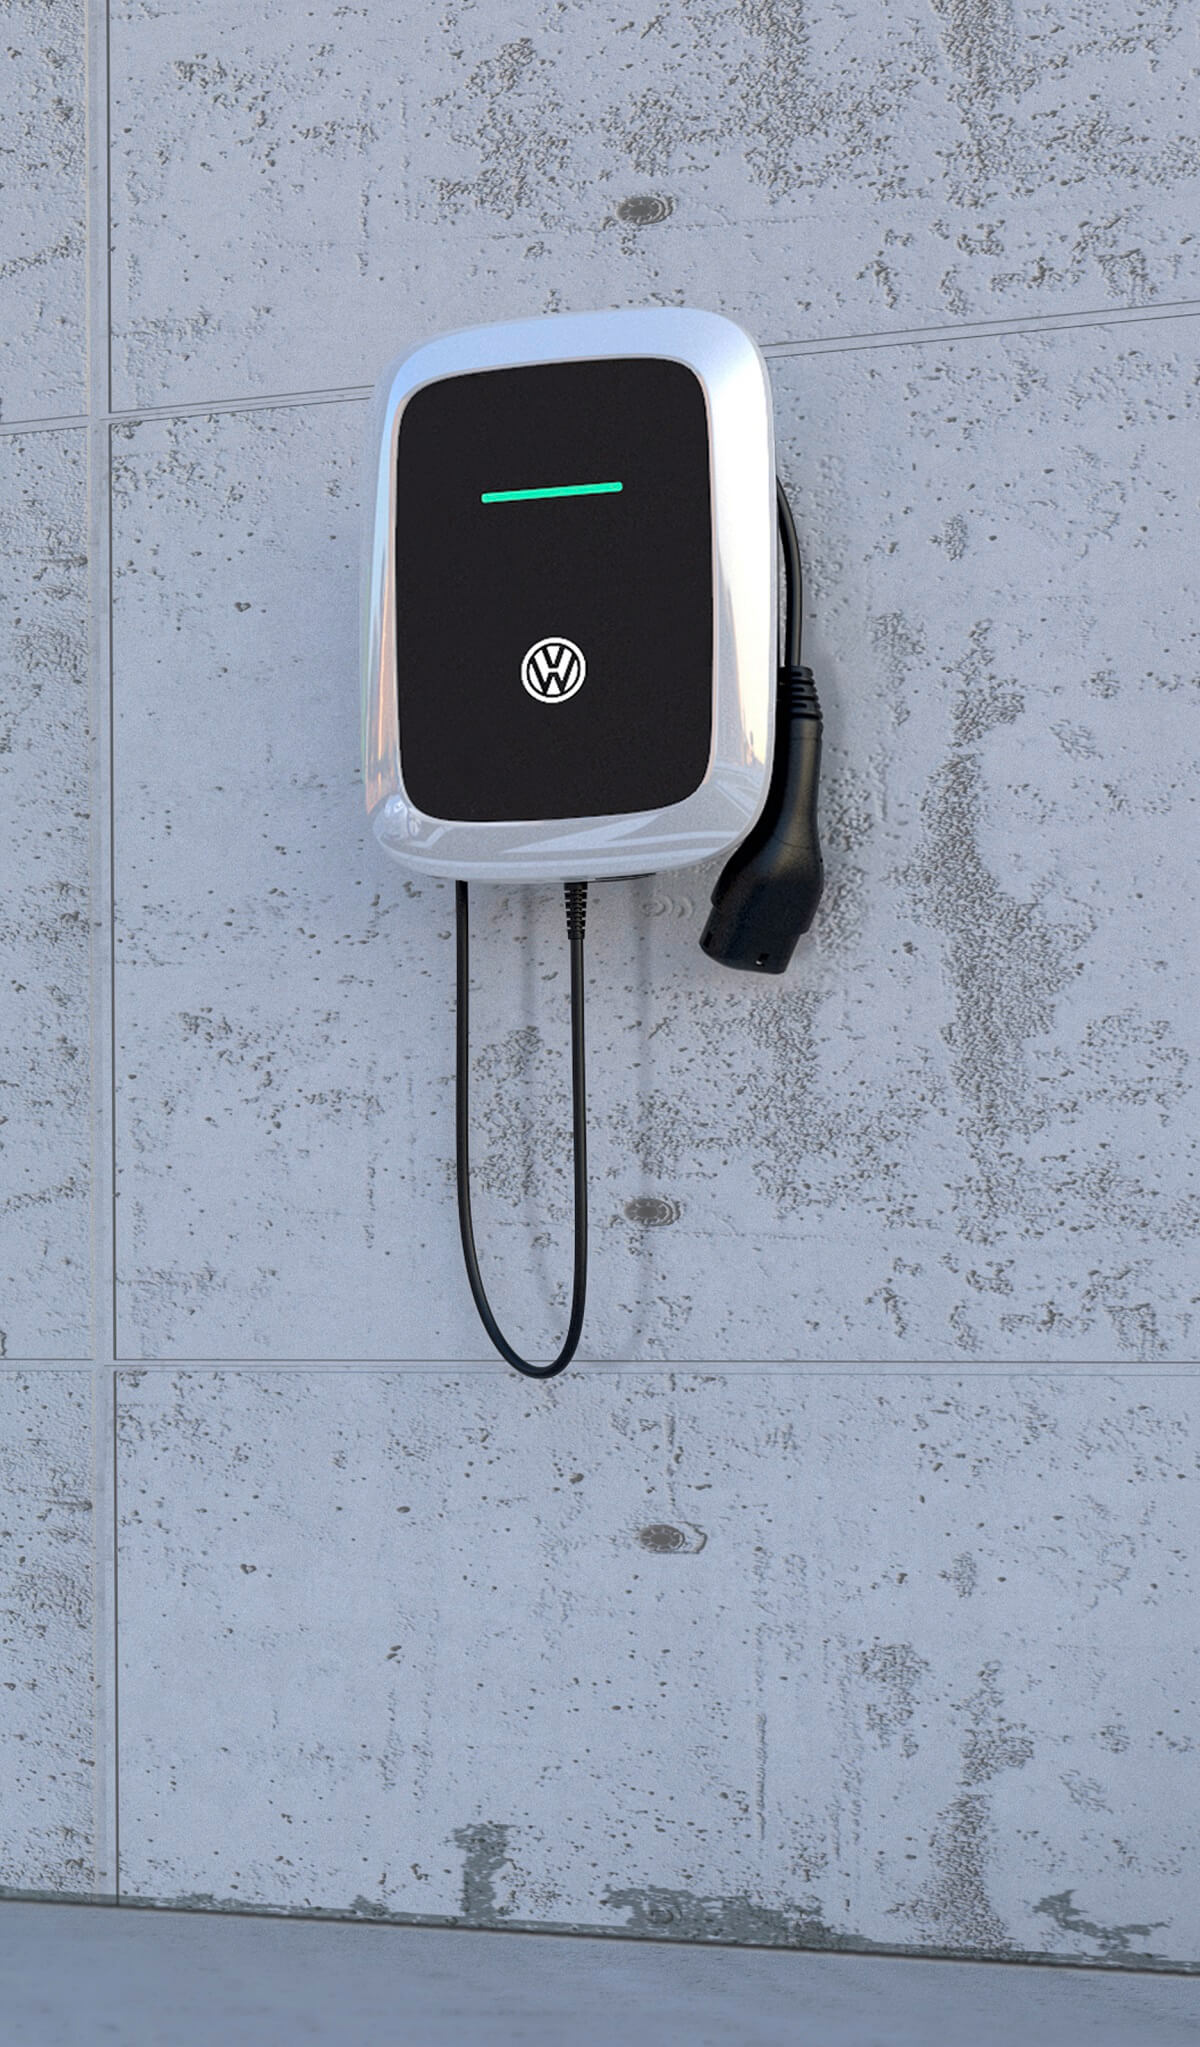 Volkswagen-Peoples-Wallbox.jpg